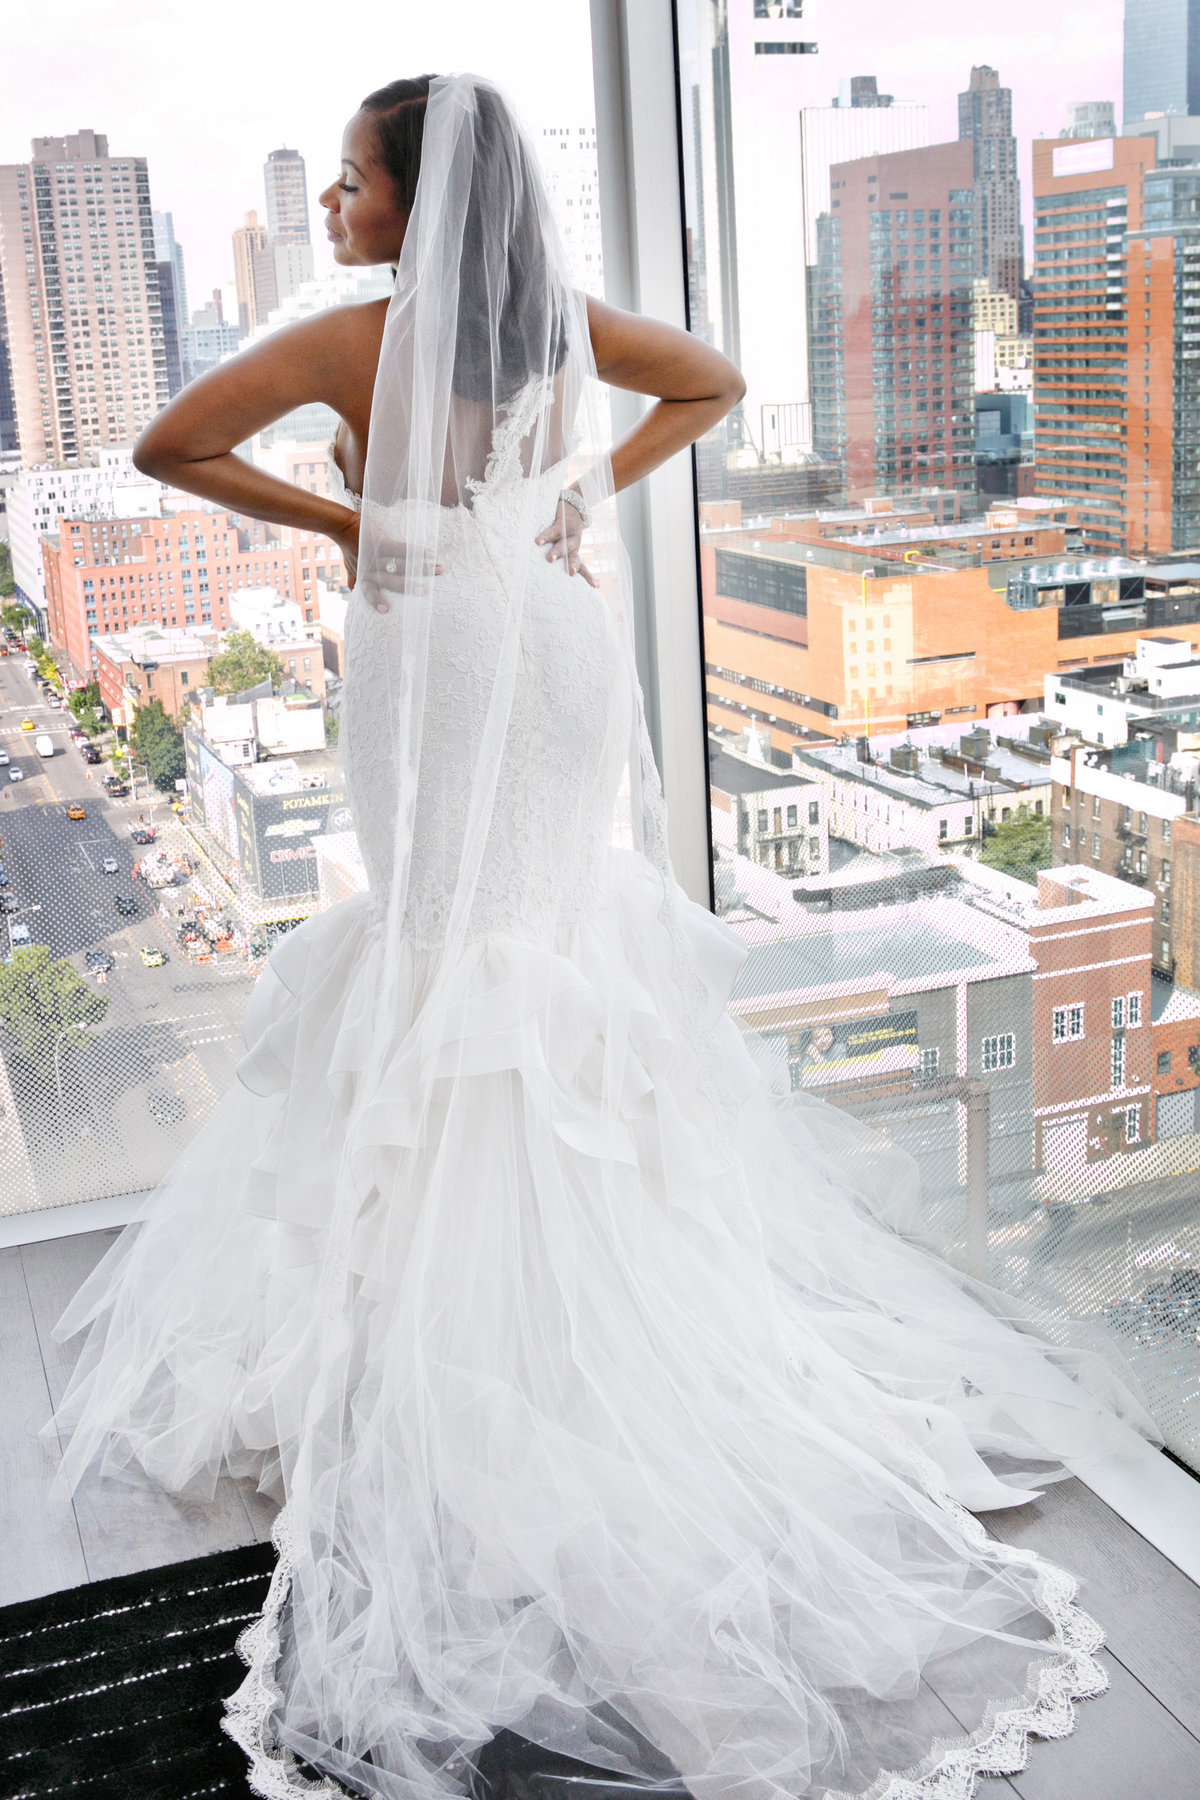 AmyAnaiz__Intimate_Elopement_Wedding_Ink48_Rooftop_Mantattan_New_York021